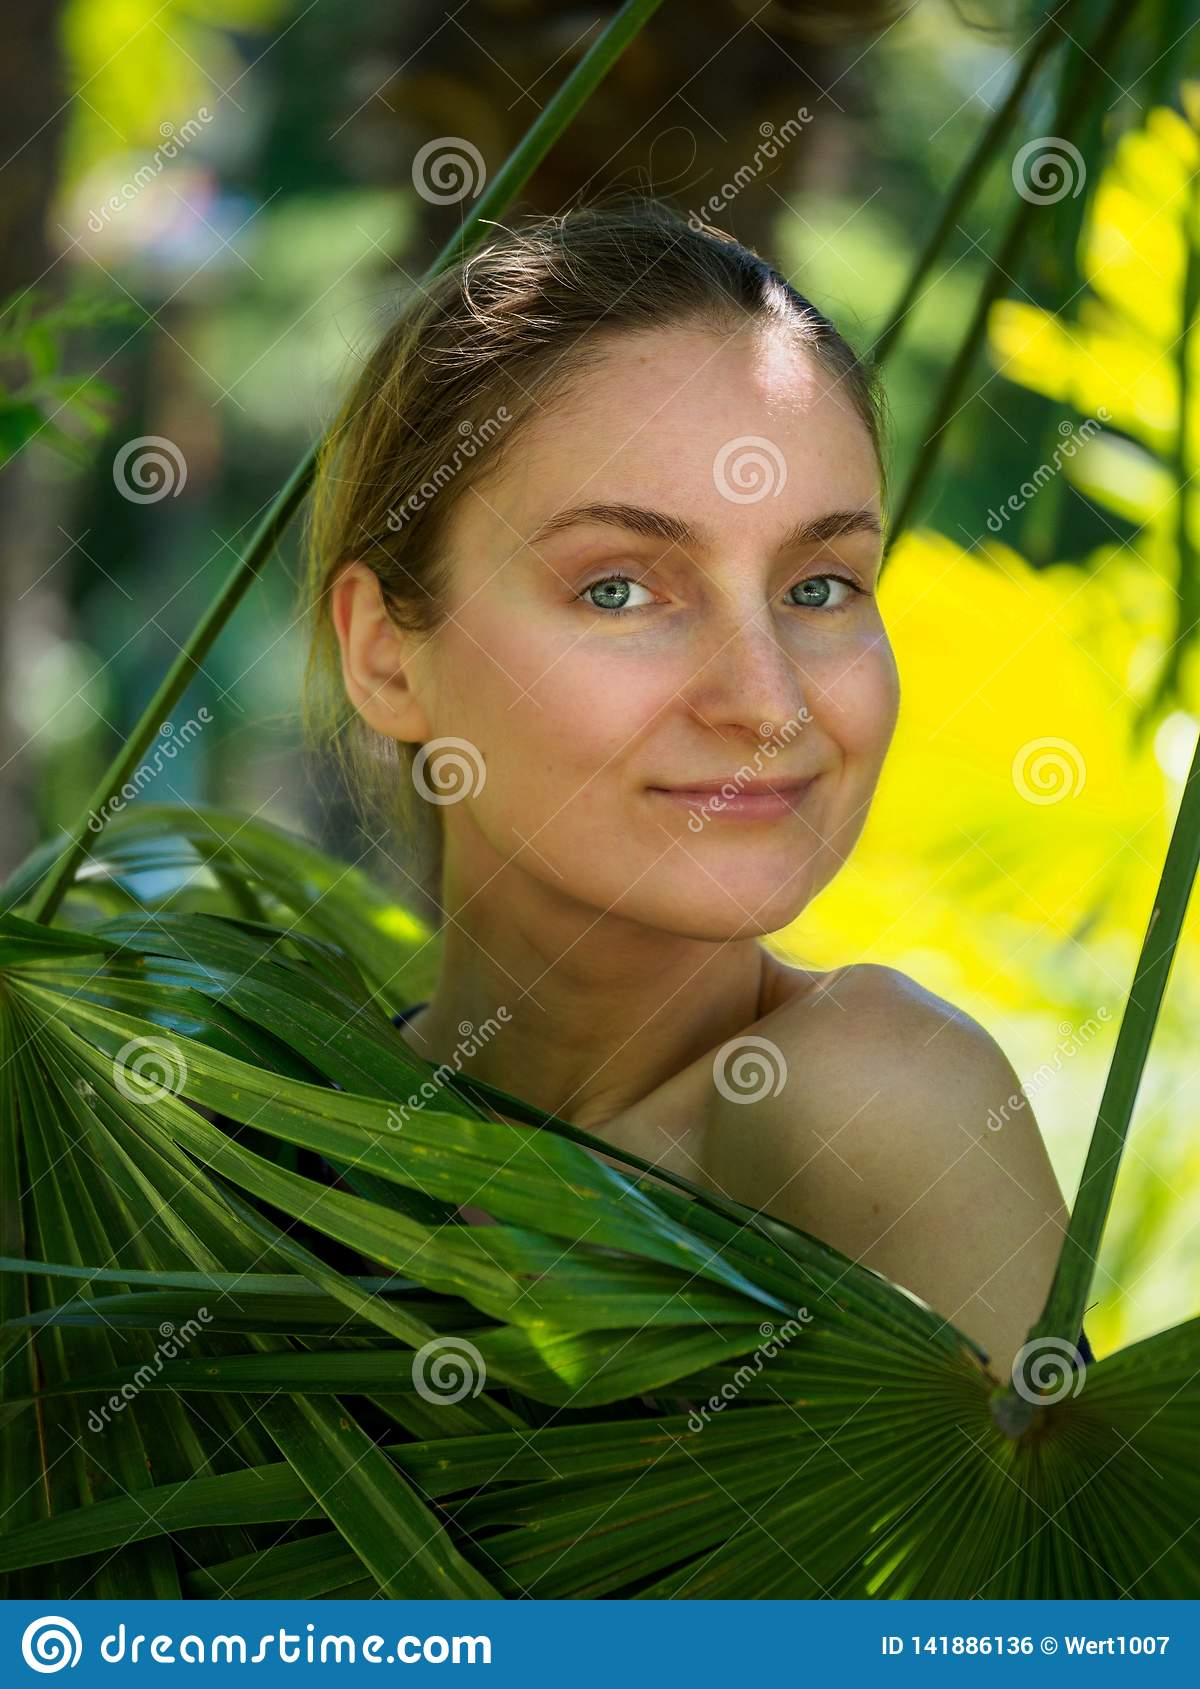 The girl hid behind the palm leaves